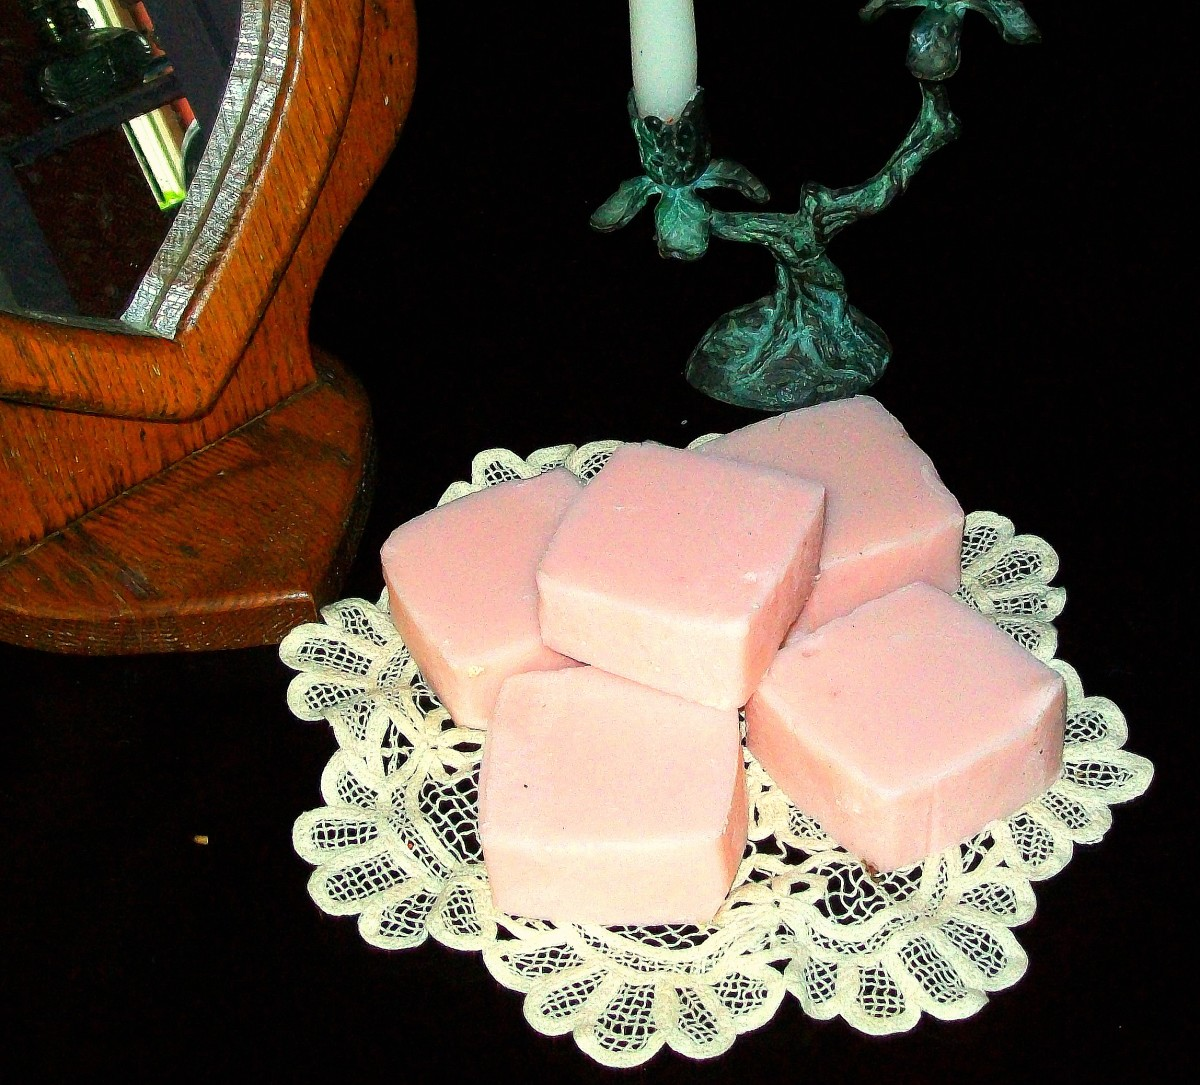 How to Make Easy Homemade Coconut Oil Soap